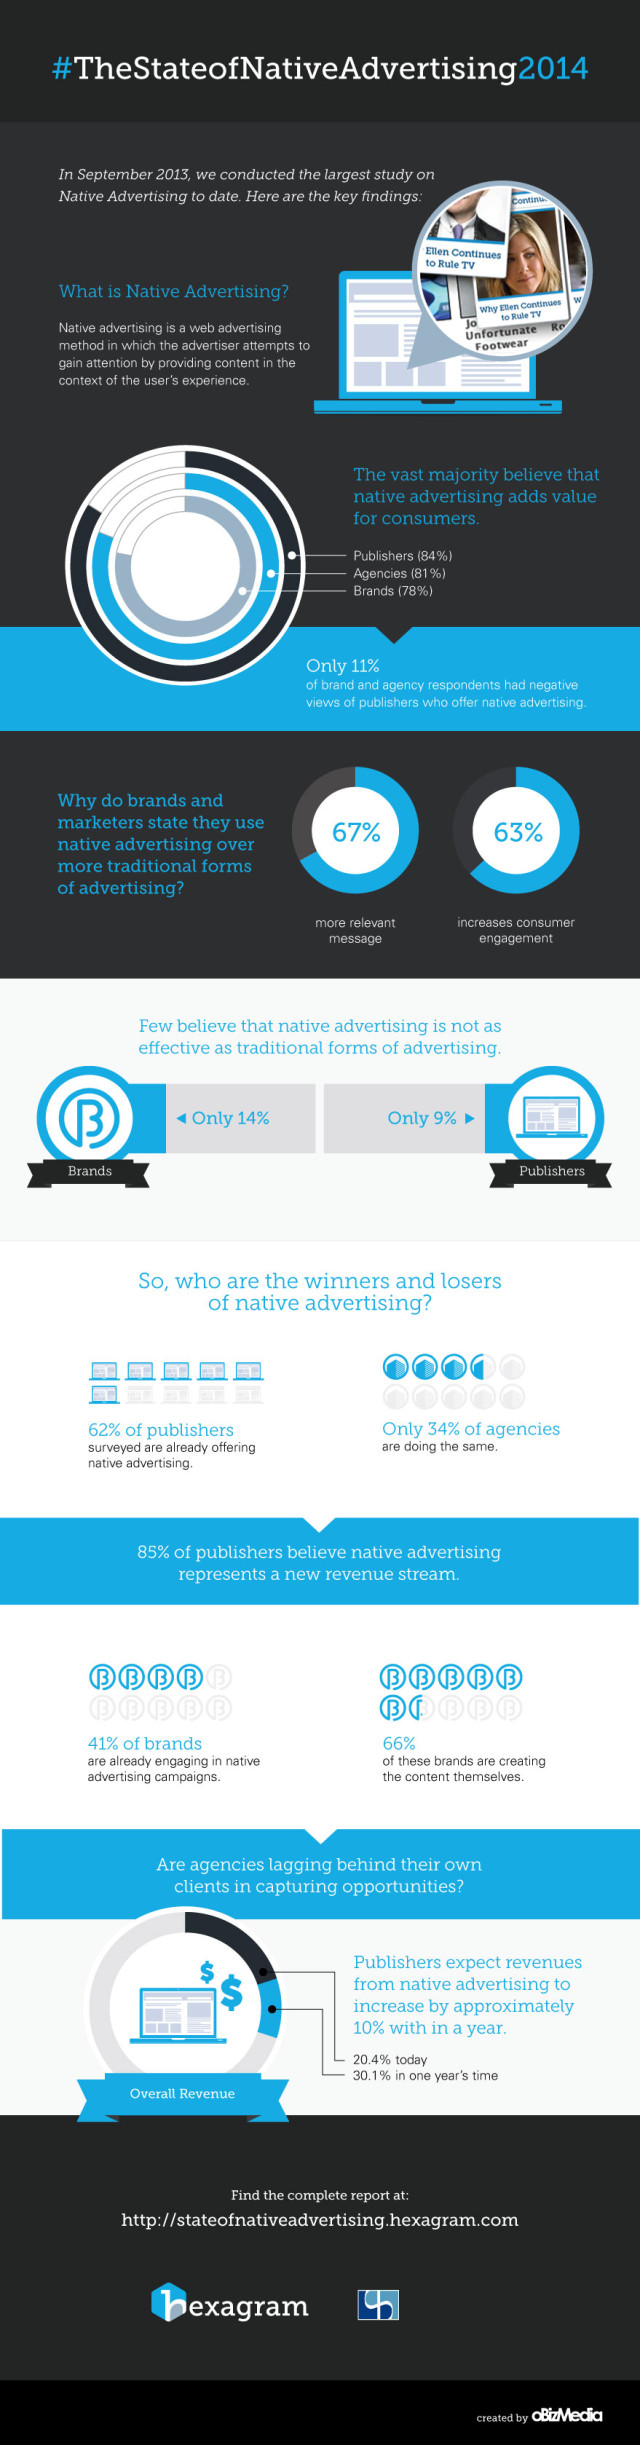 NativeAdvertising_2014